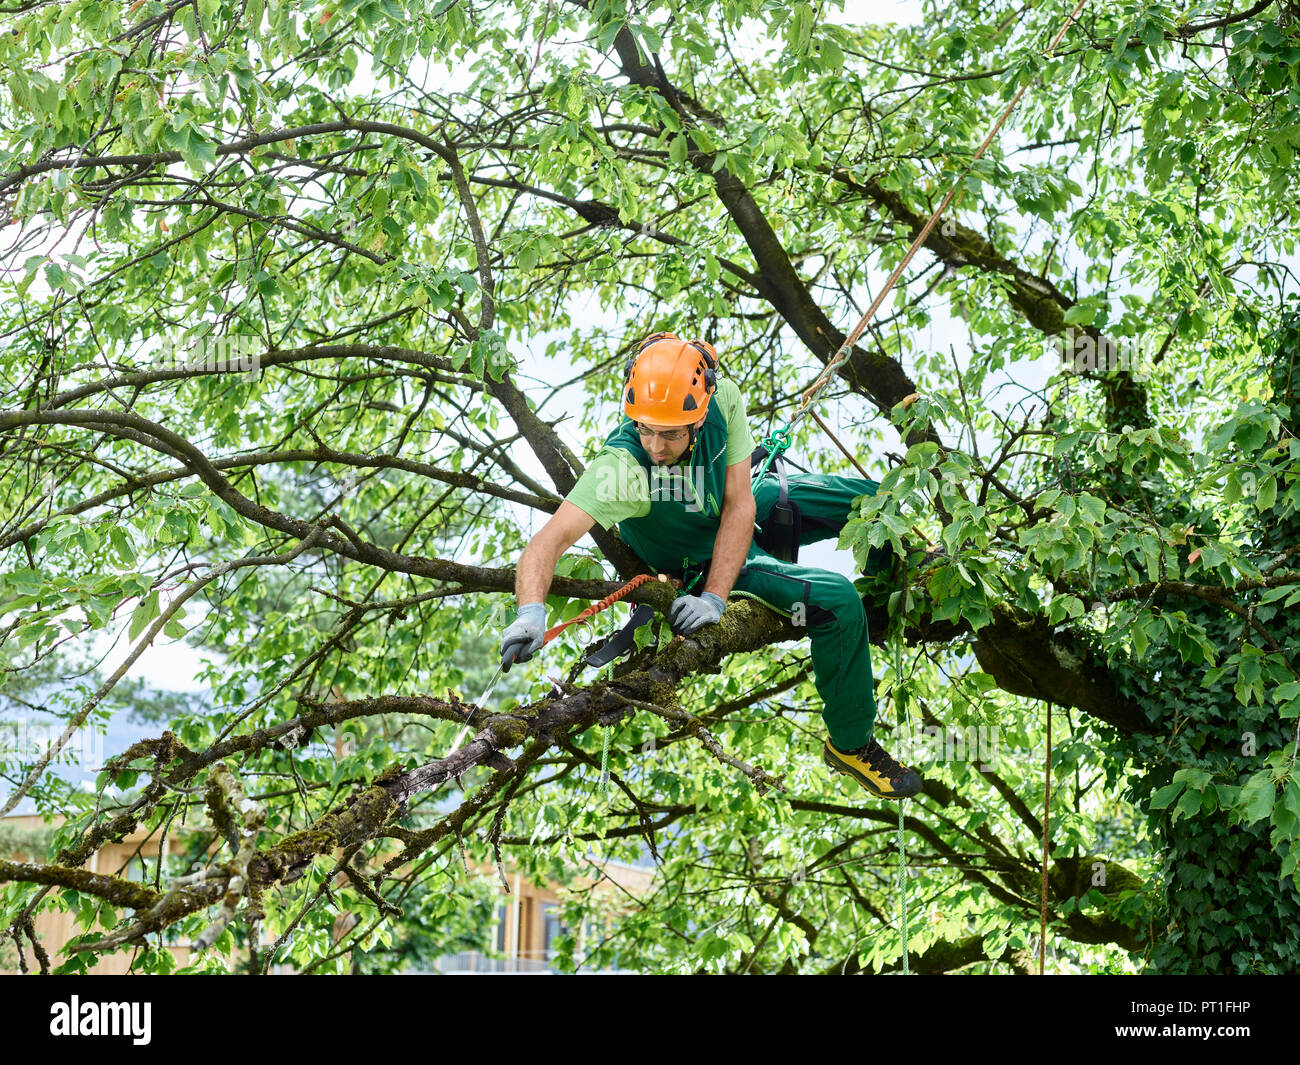 Tree Cutter Tree Cutter Pruning Of Tree Stock Photo 221310370 Alamy